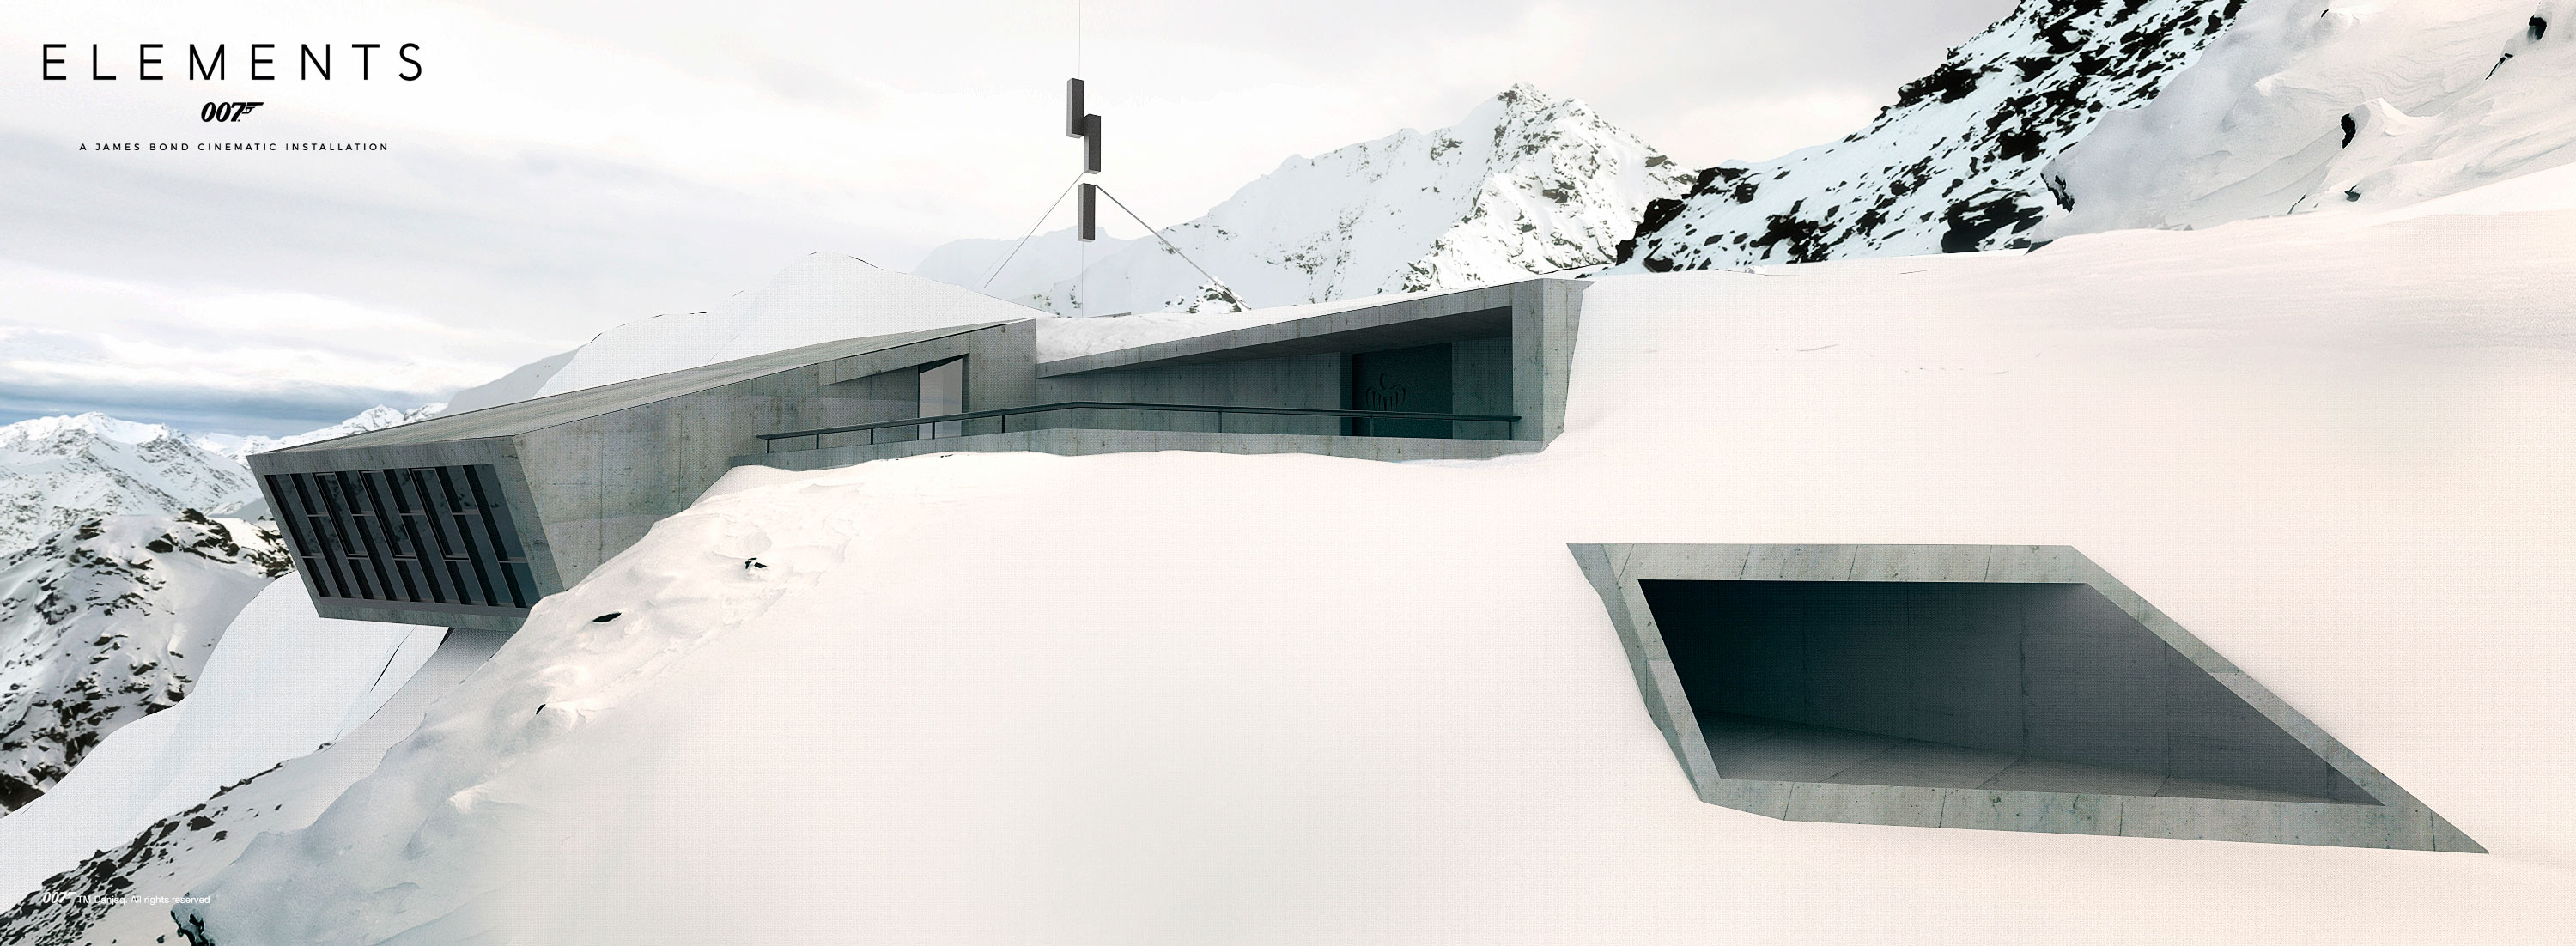 007-Elements-Solden-Exterior-Render-v2